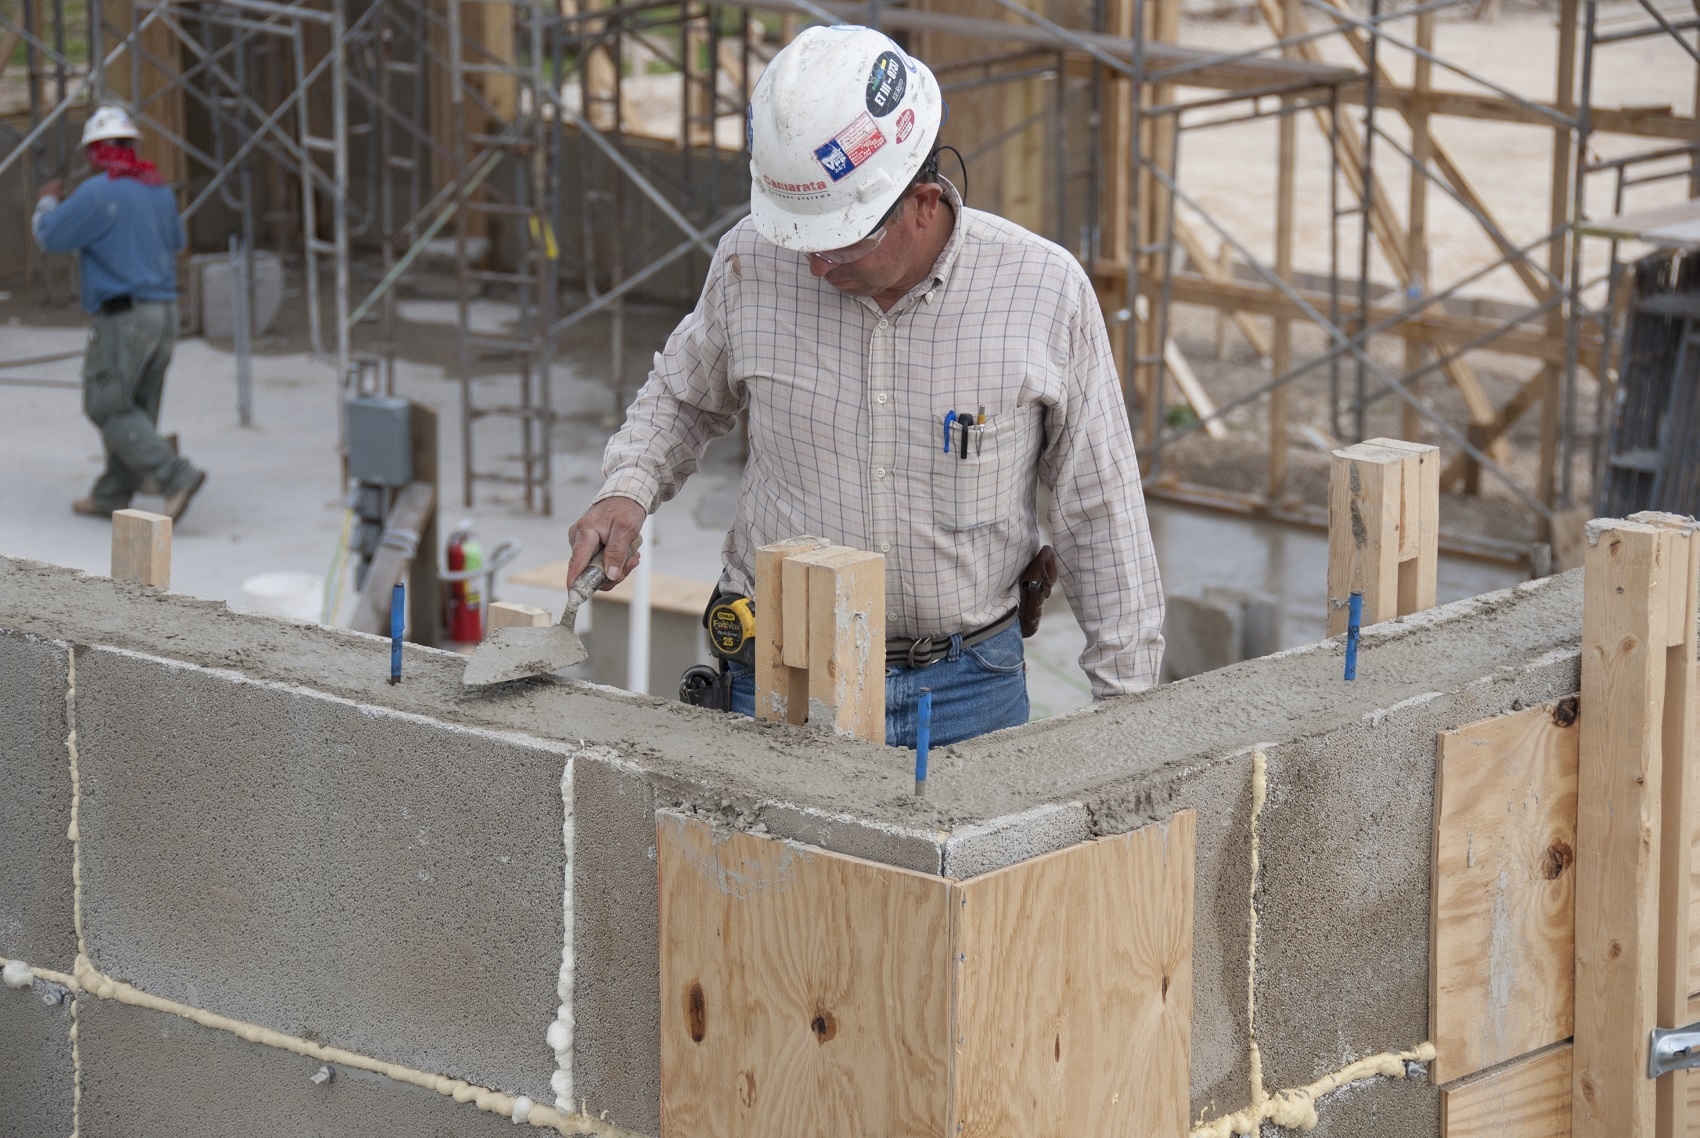 Construction worker wearing a white hard hat uses trowel to smooth mortar on the top of a concrete block wall.